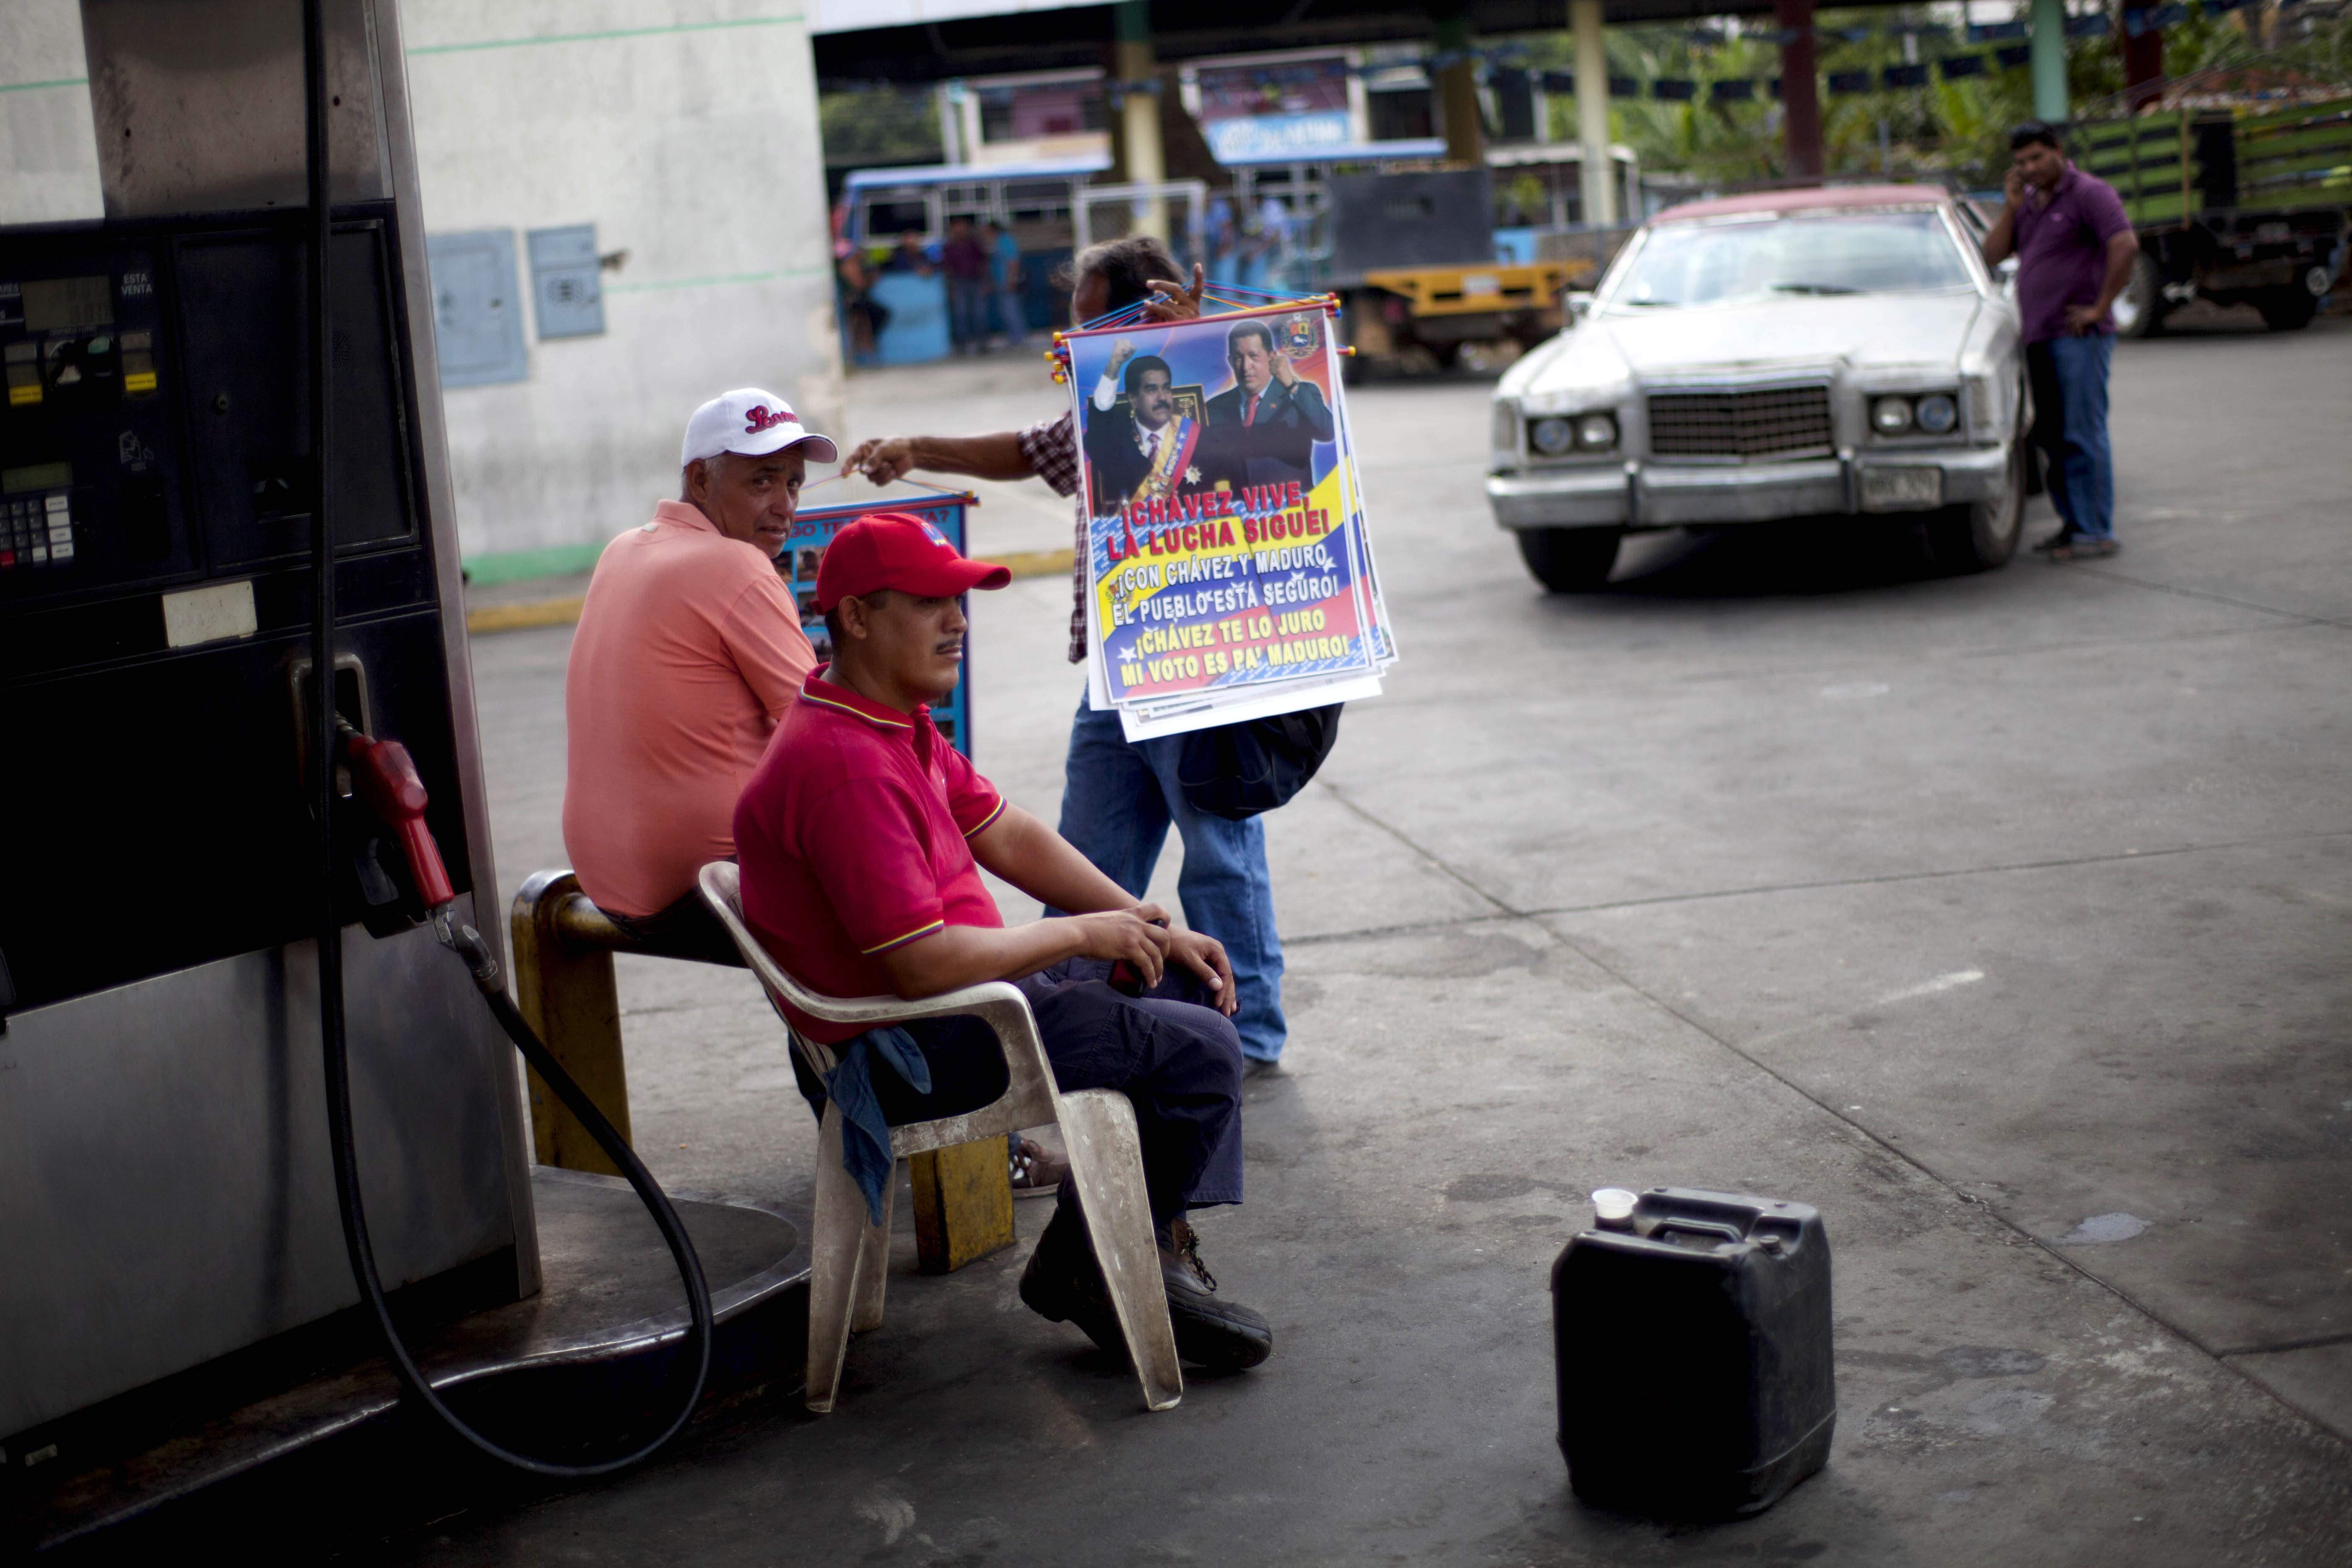 In this April 8, 2013 photo, street vendor Jose Gonzalez, 62, tries to persuade gas stations workers to buy some posters featuring Venezuela's late President Hugo Chavez and acting President Nicolas Maduro, in Tacarigua, Venezuela. Outside Venezuela's capital, power outages, food shortages and unfinished projects abound; important factors heading into Sunday's election to replace Chavez, who died last month after a long battle with cancer. Polls show that support for Maduro, Chavez's hand-picked successor, may be eroding and constant power outages are a testament to the neglect many Venezuelans consider inexcusable in this major oil-producing state. (AP Photo/Ramon Espinosa)